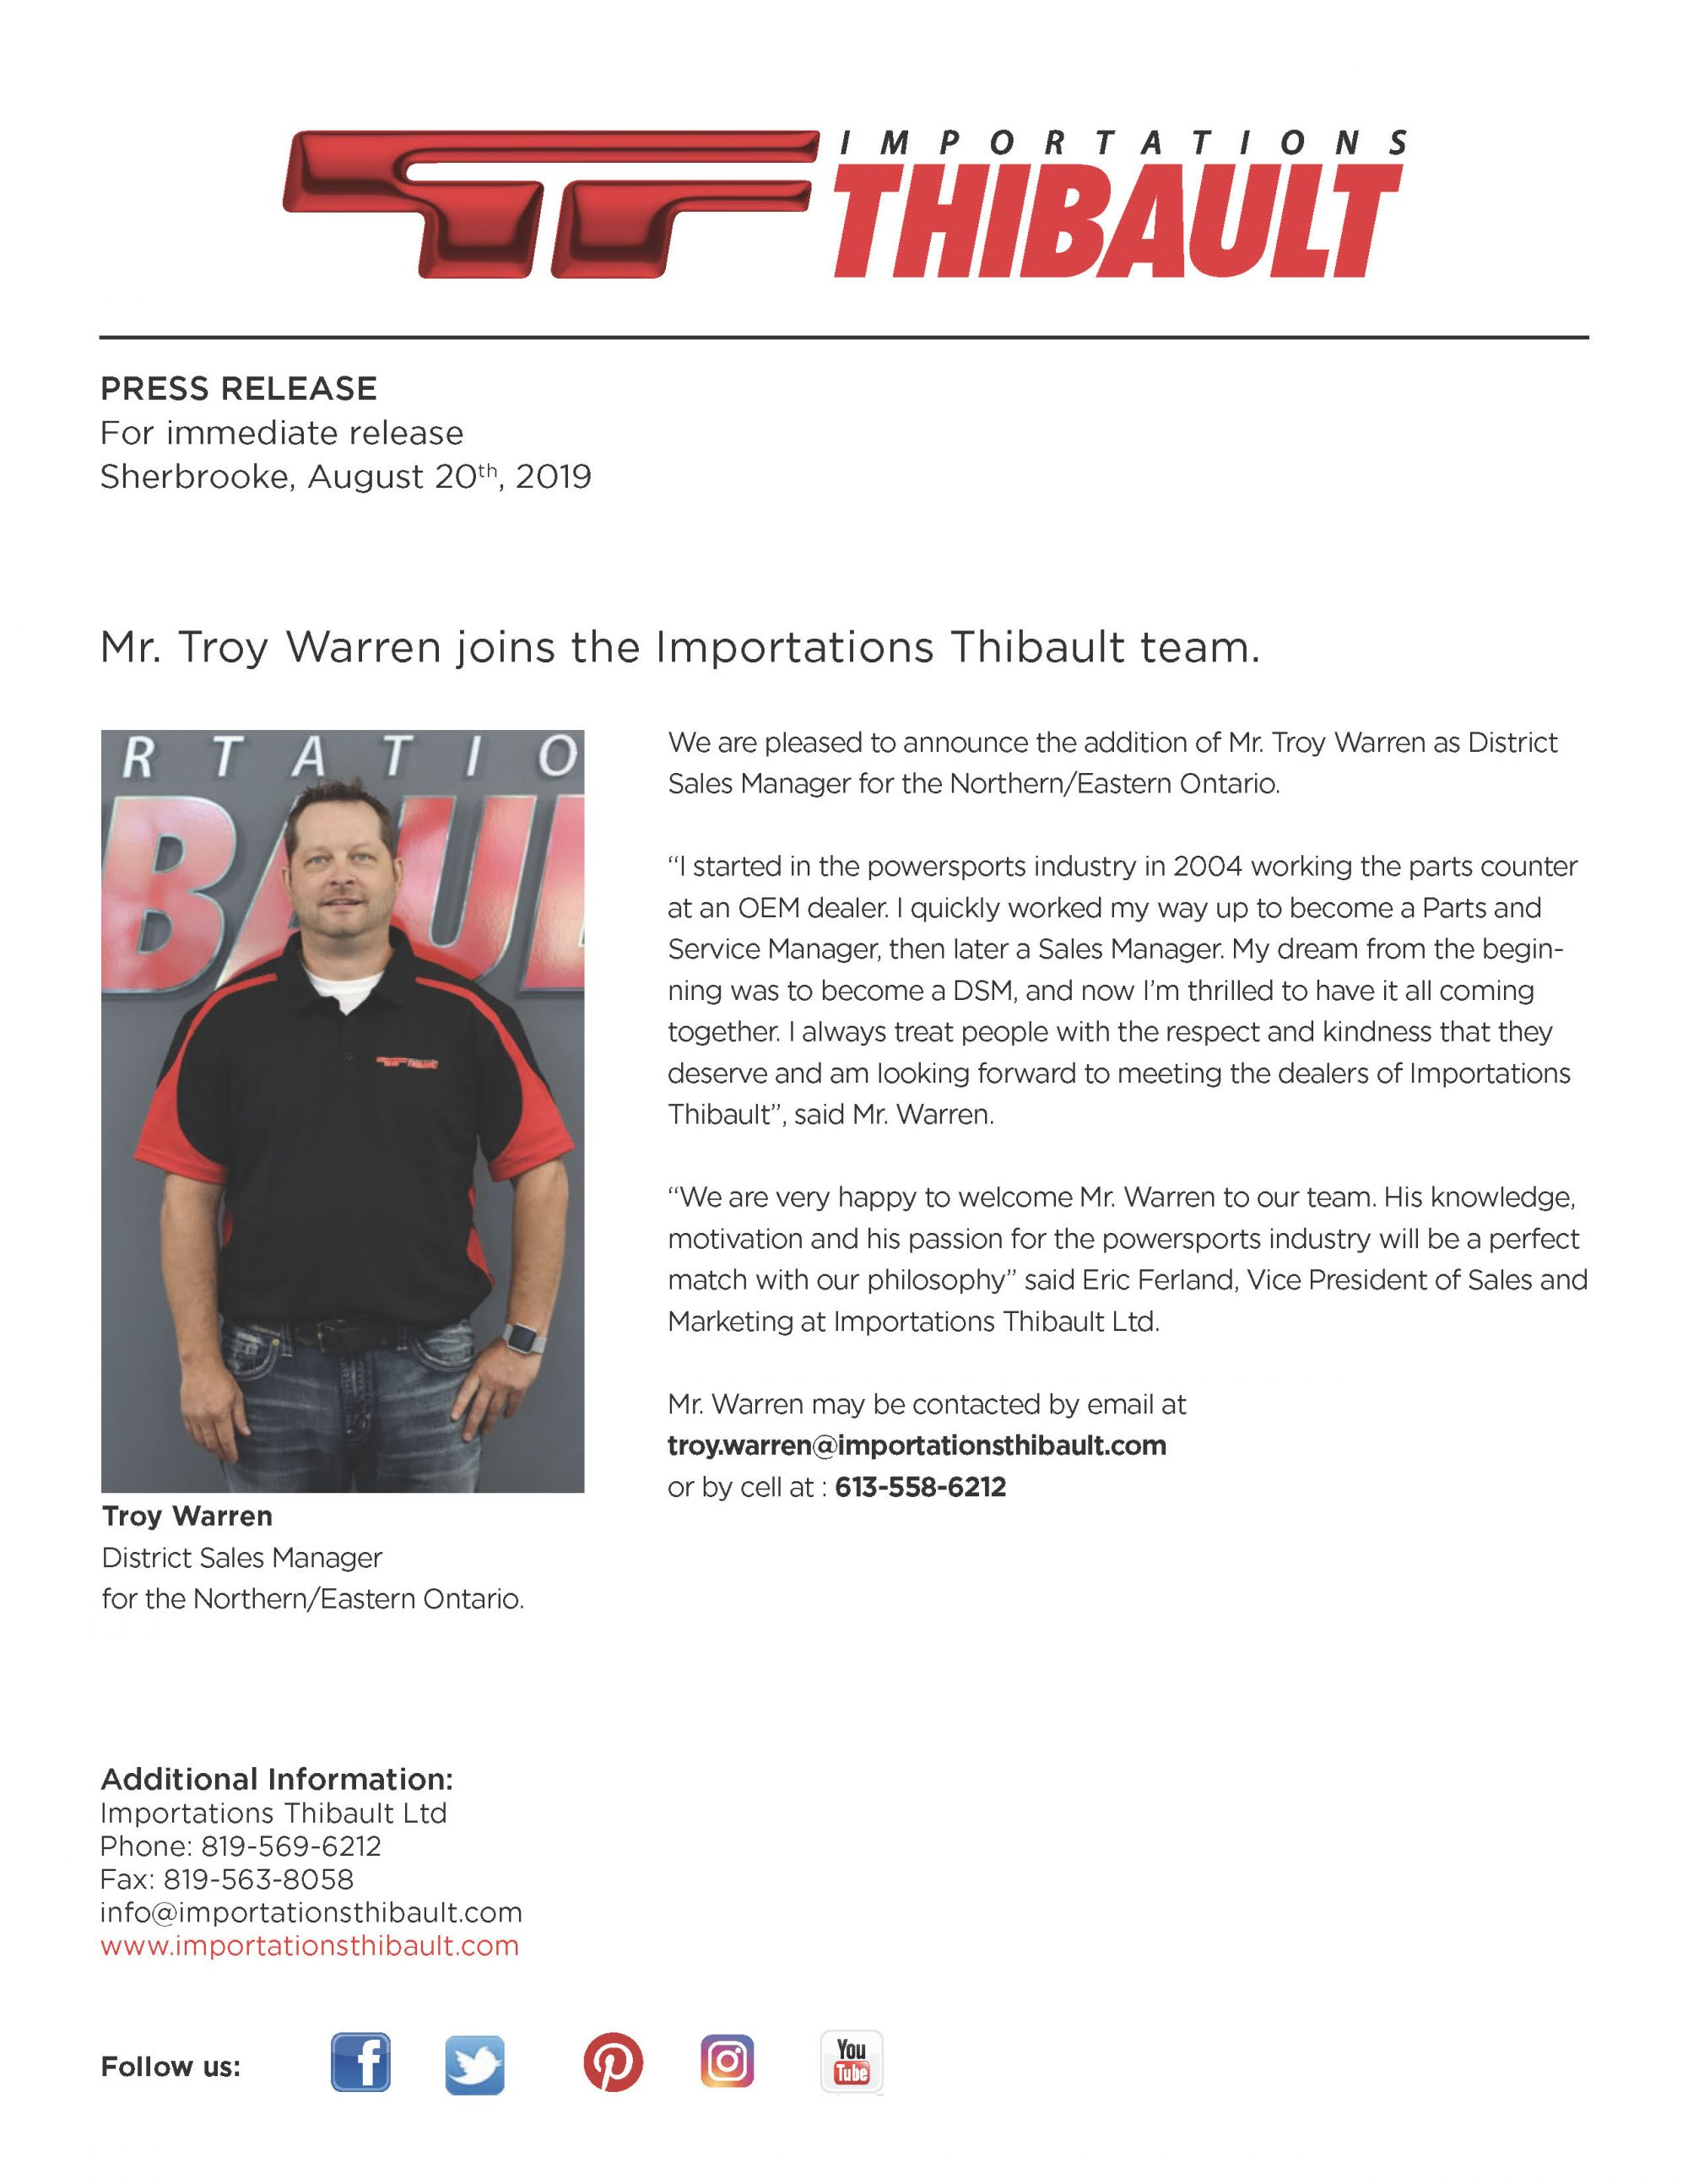 Mr. Troy Warren joins the Importations Thibault team.